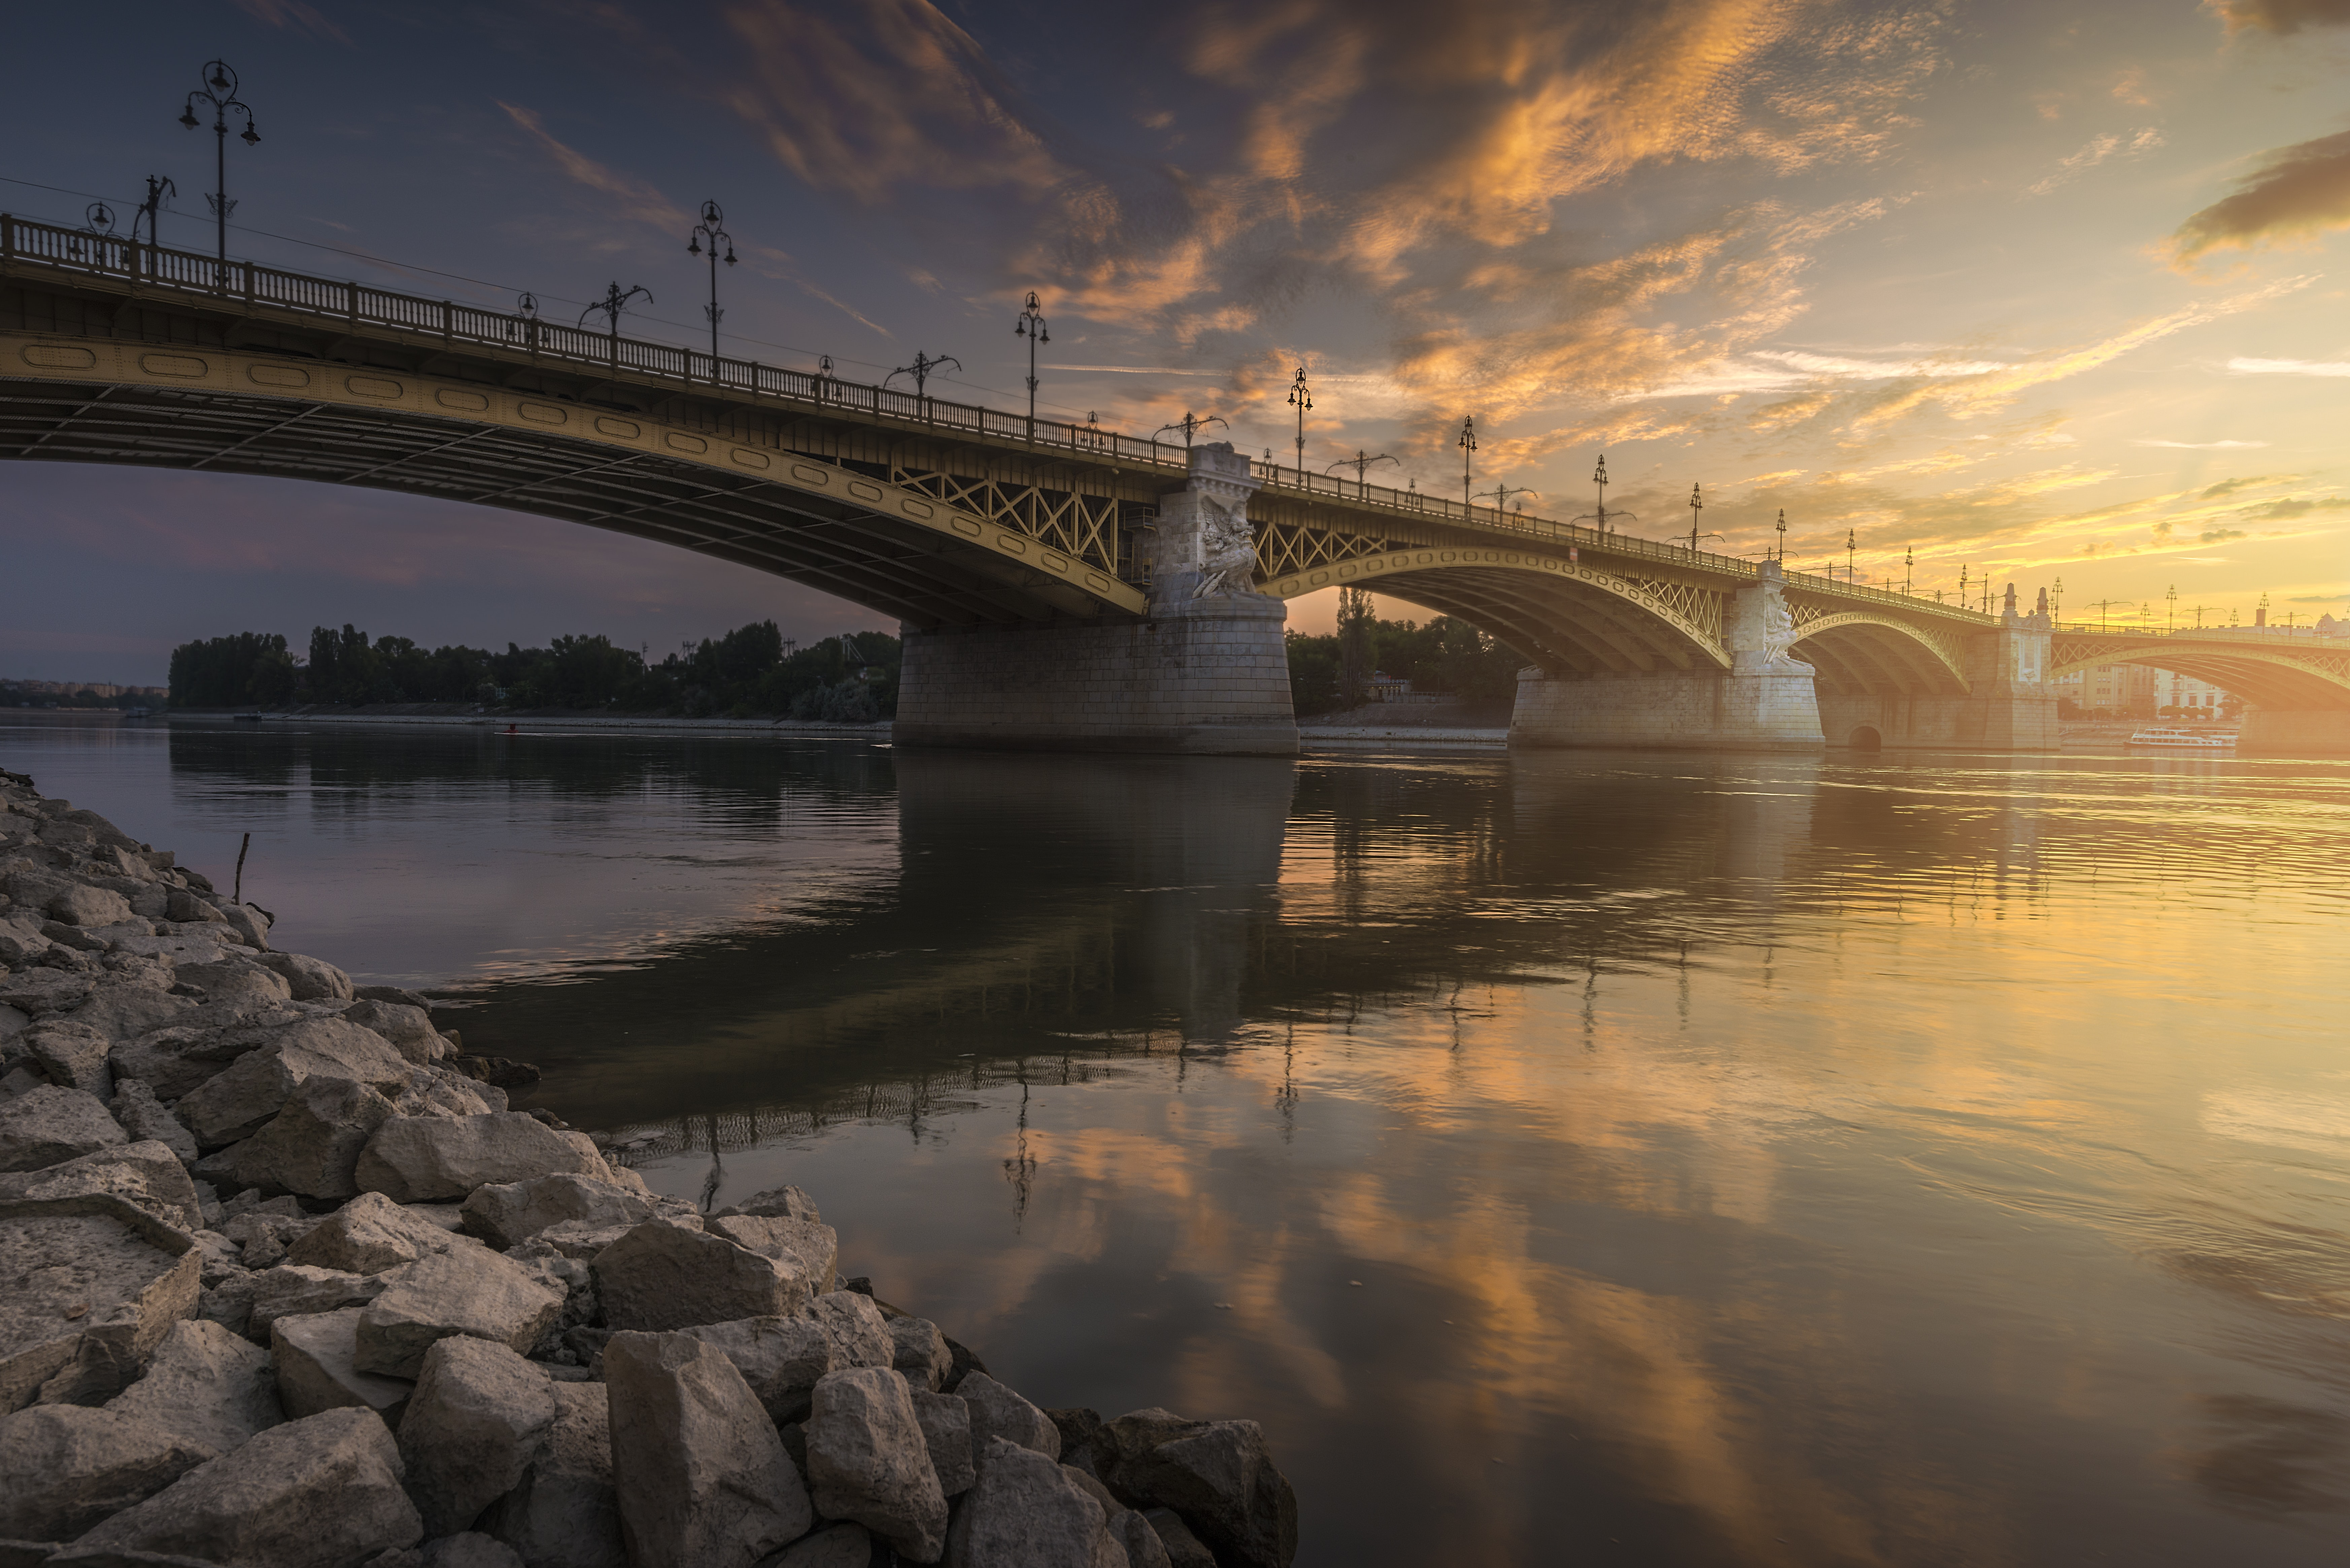 The steel arch bridge and sky reflect into the still river in Budapest during sunrise-or-sunset